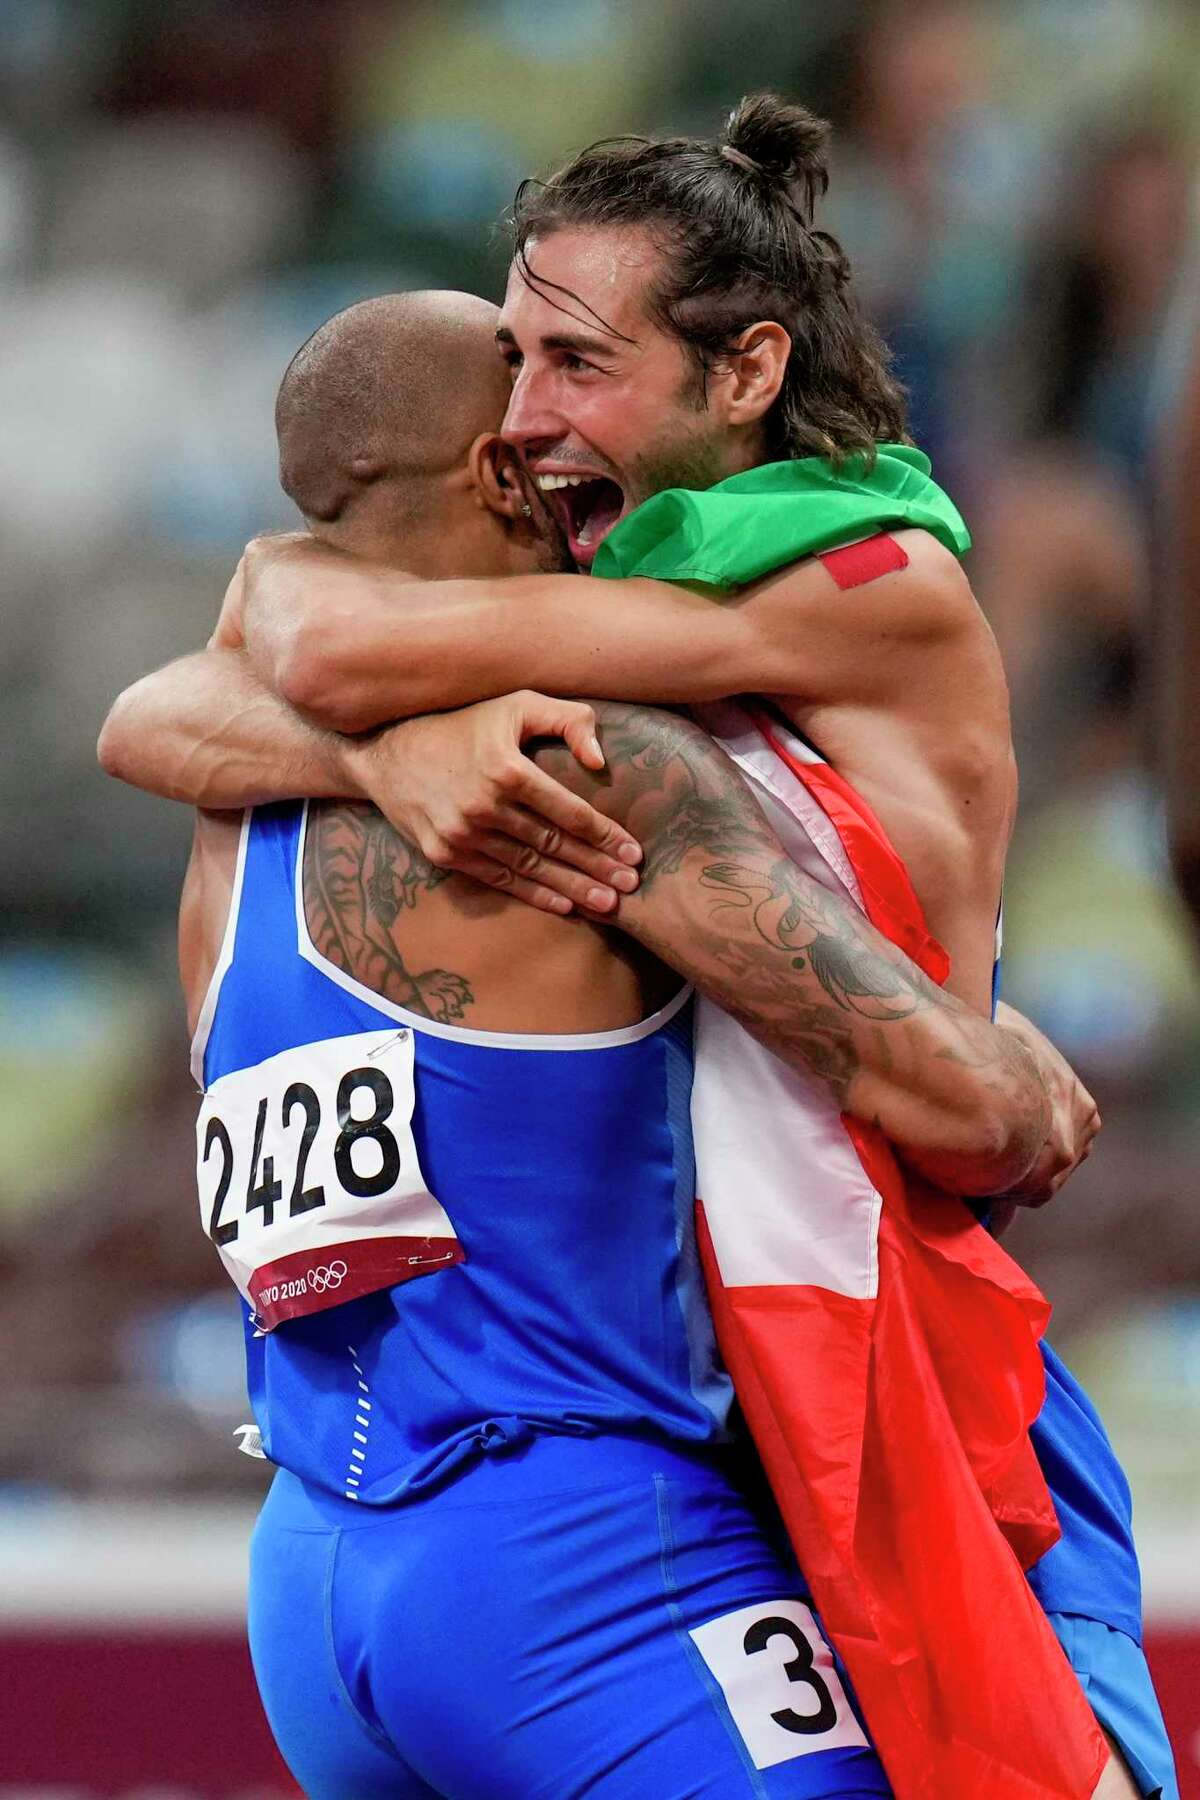 Lamont Jacobs, left, of Italy, celebrates after winning the men's the 100-meter final with high jump winner Gianmarco Tamberi, also of Italy, at the 2020 Summer Olympics, Sunday, Aug. 1, 2021, in Tokyo.